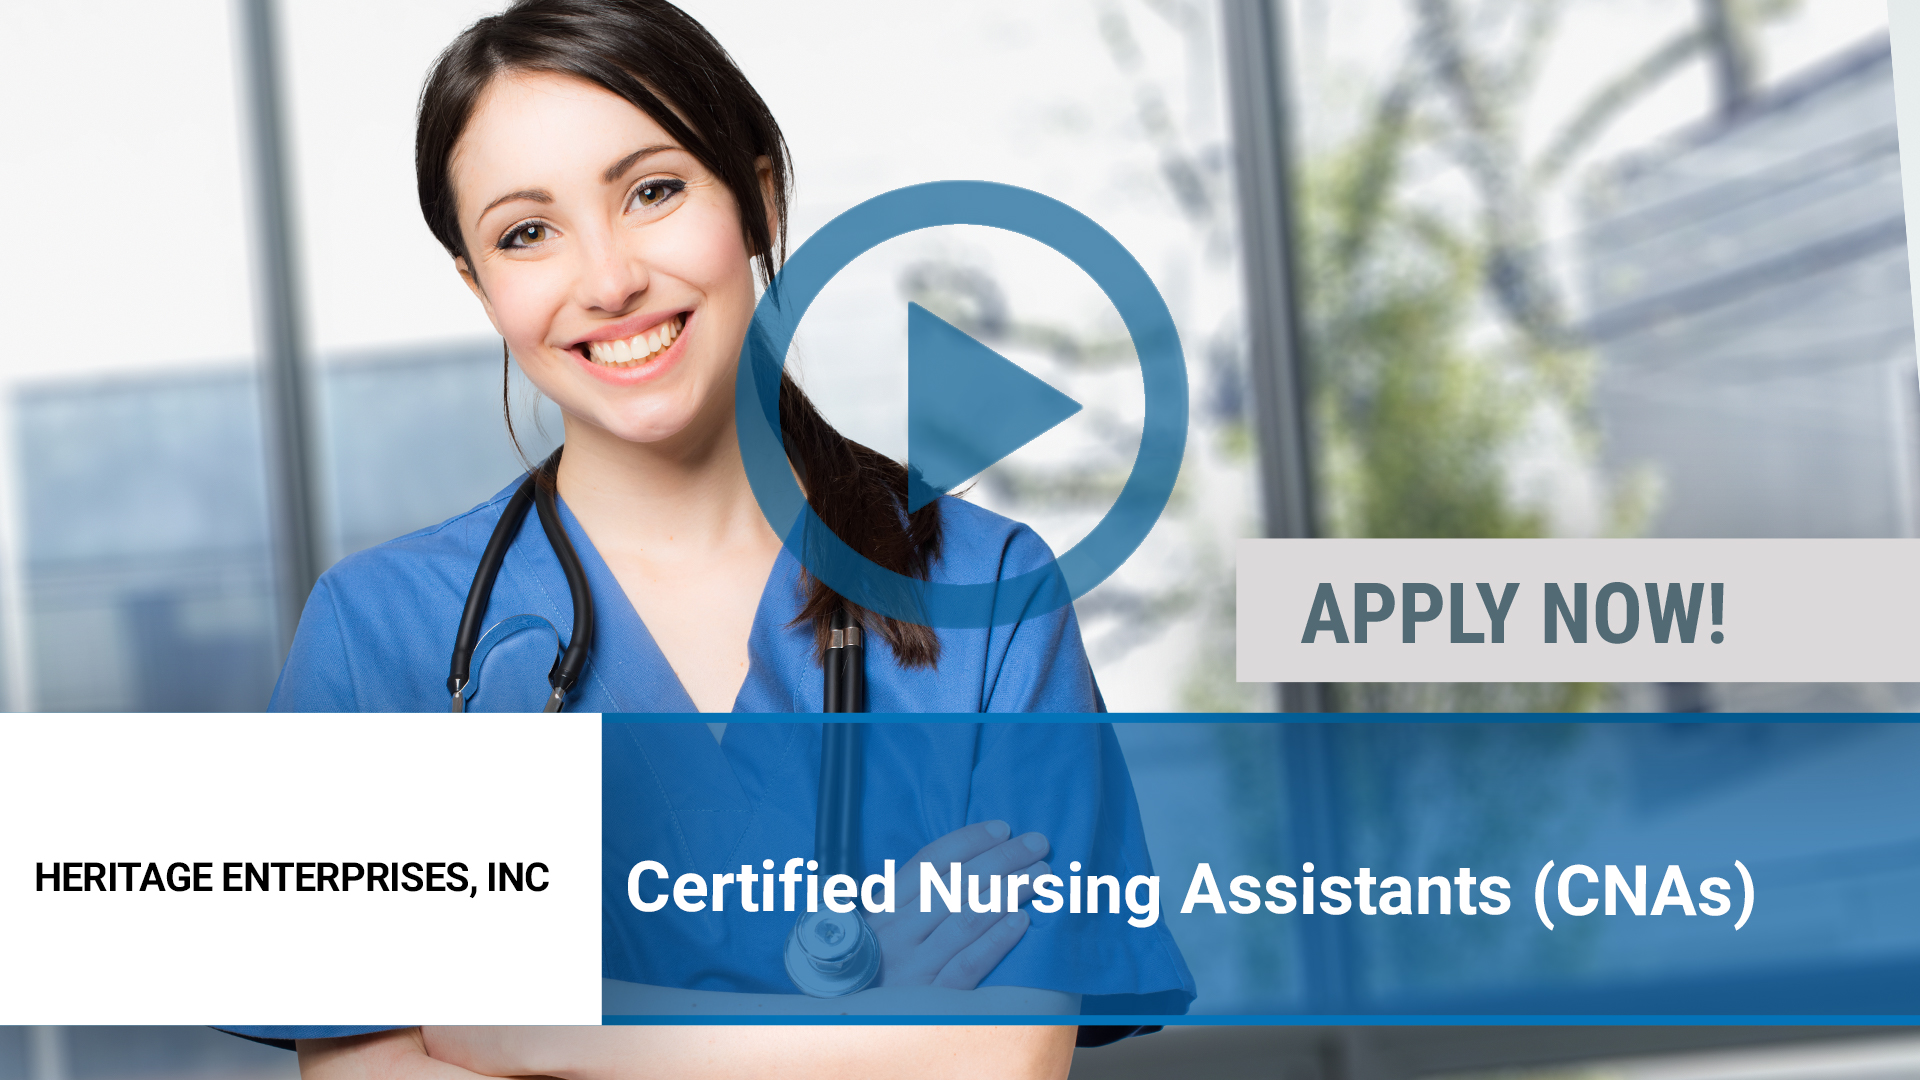 Watch our careers video for available job opening Certified Nursing Assistants (CNAs) in Chillicothe, IL